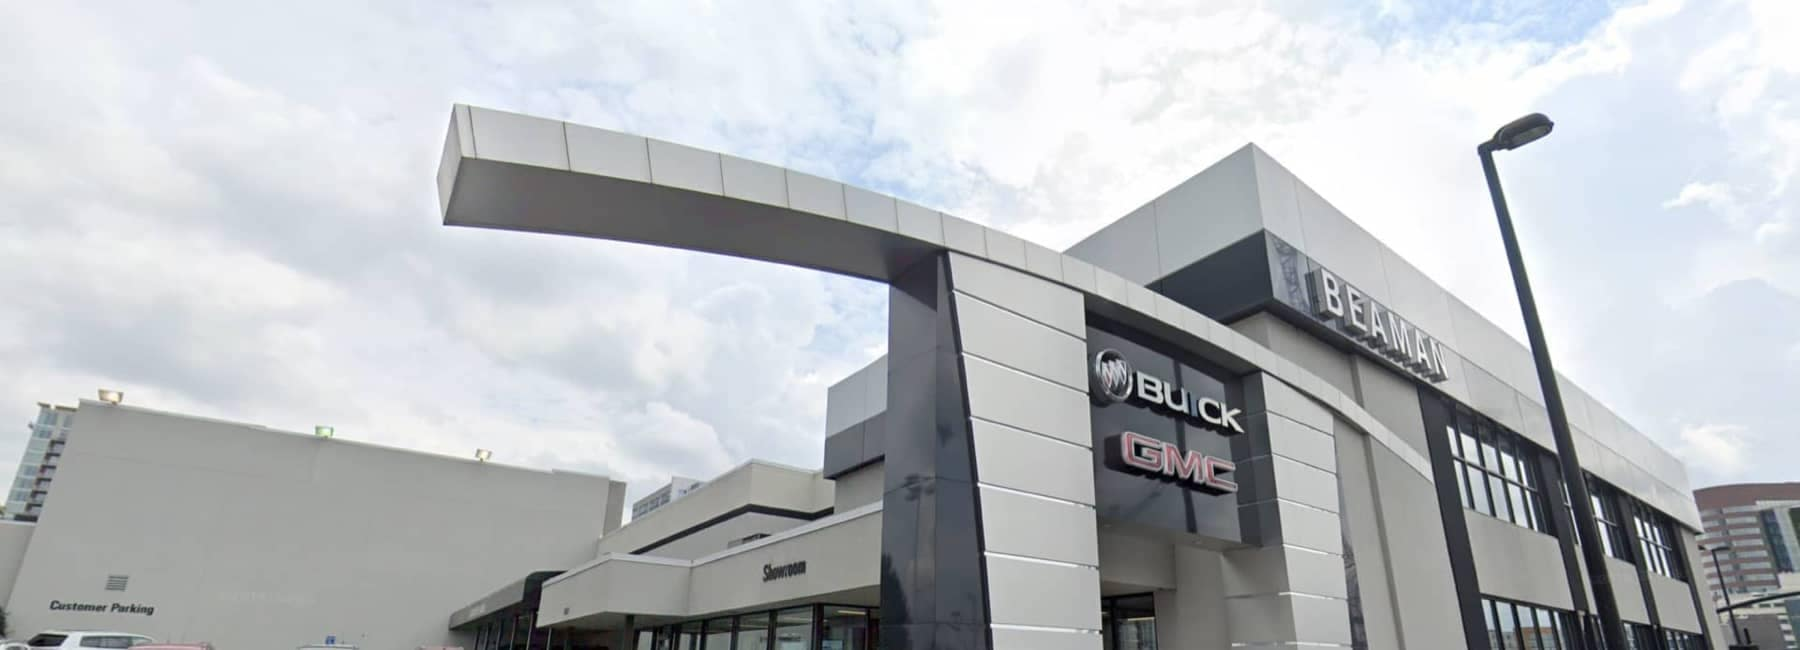 Beaman Buick GMC Dealership